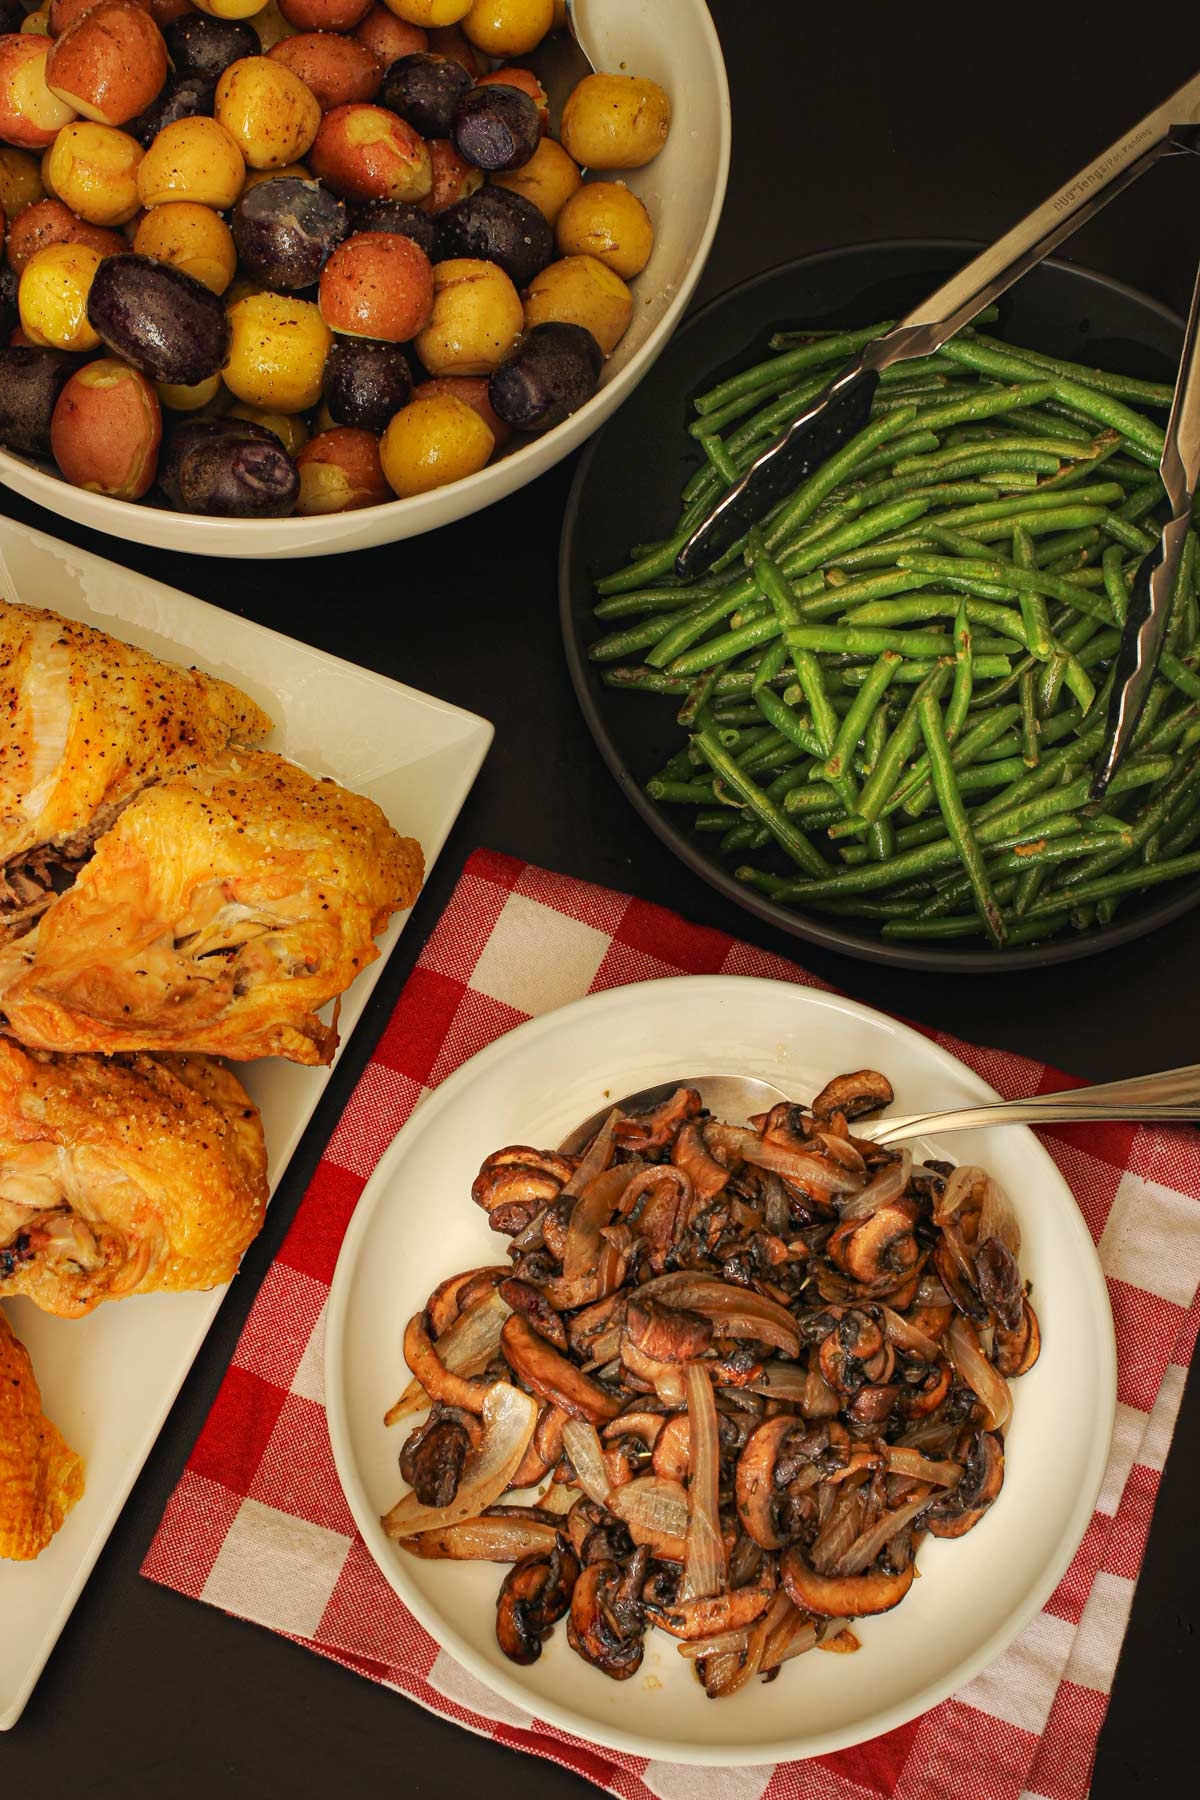 dinner table spread with platters of chicken, potatoes, green beans, and sautéed mushrooms and onions.